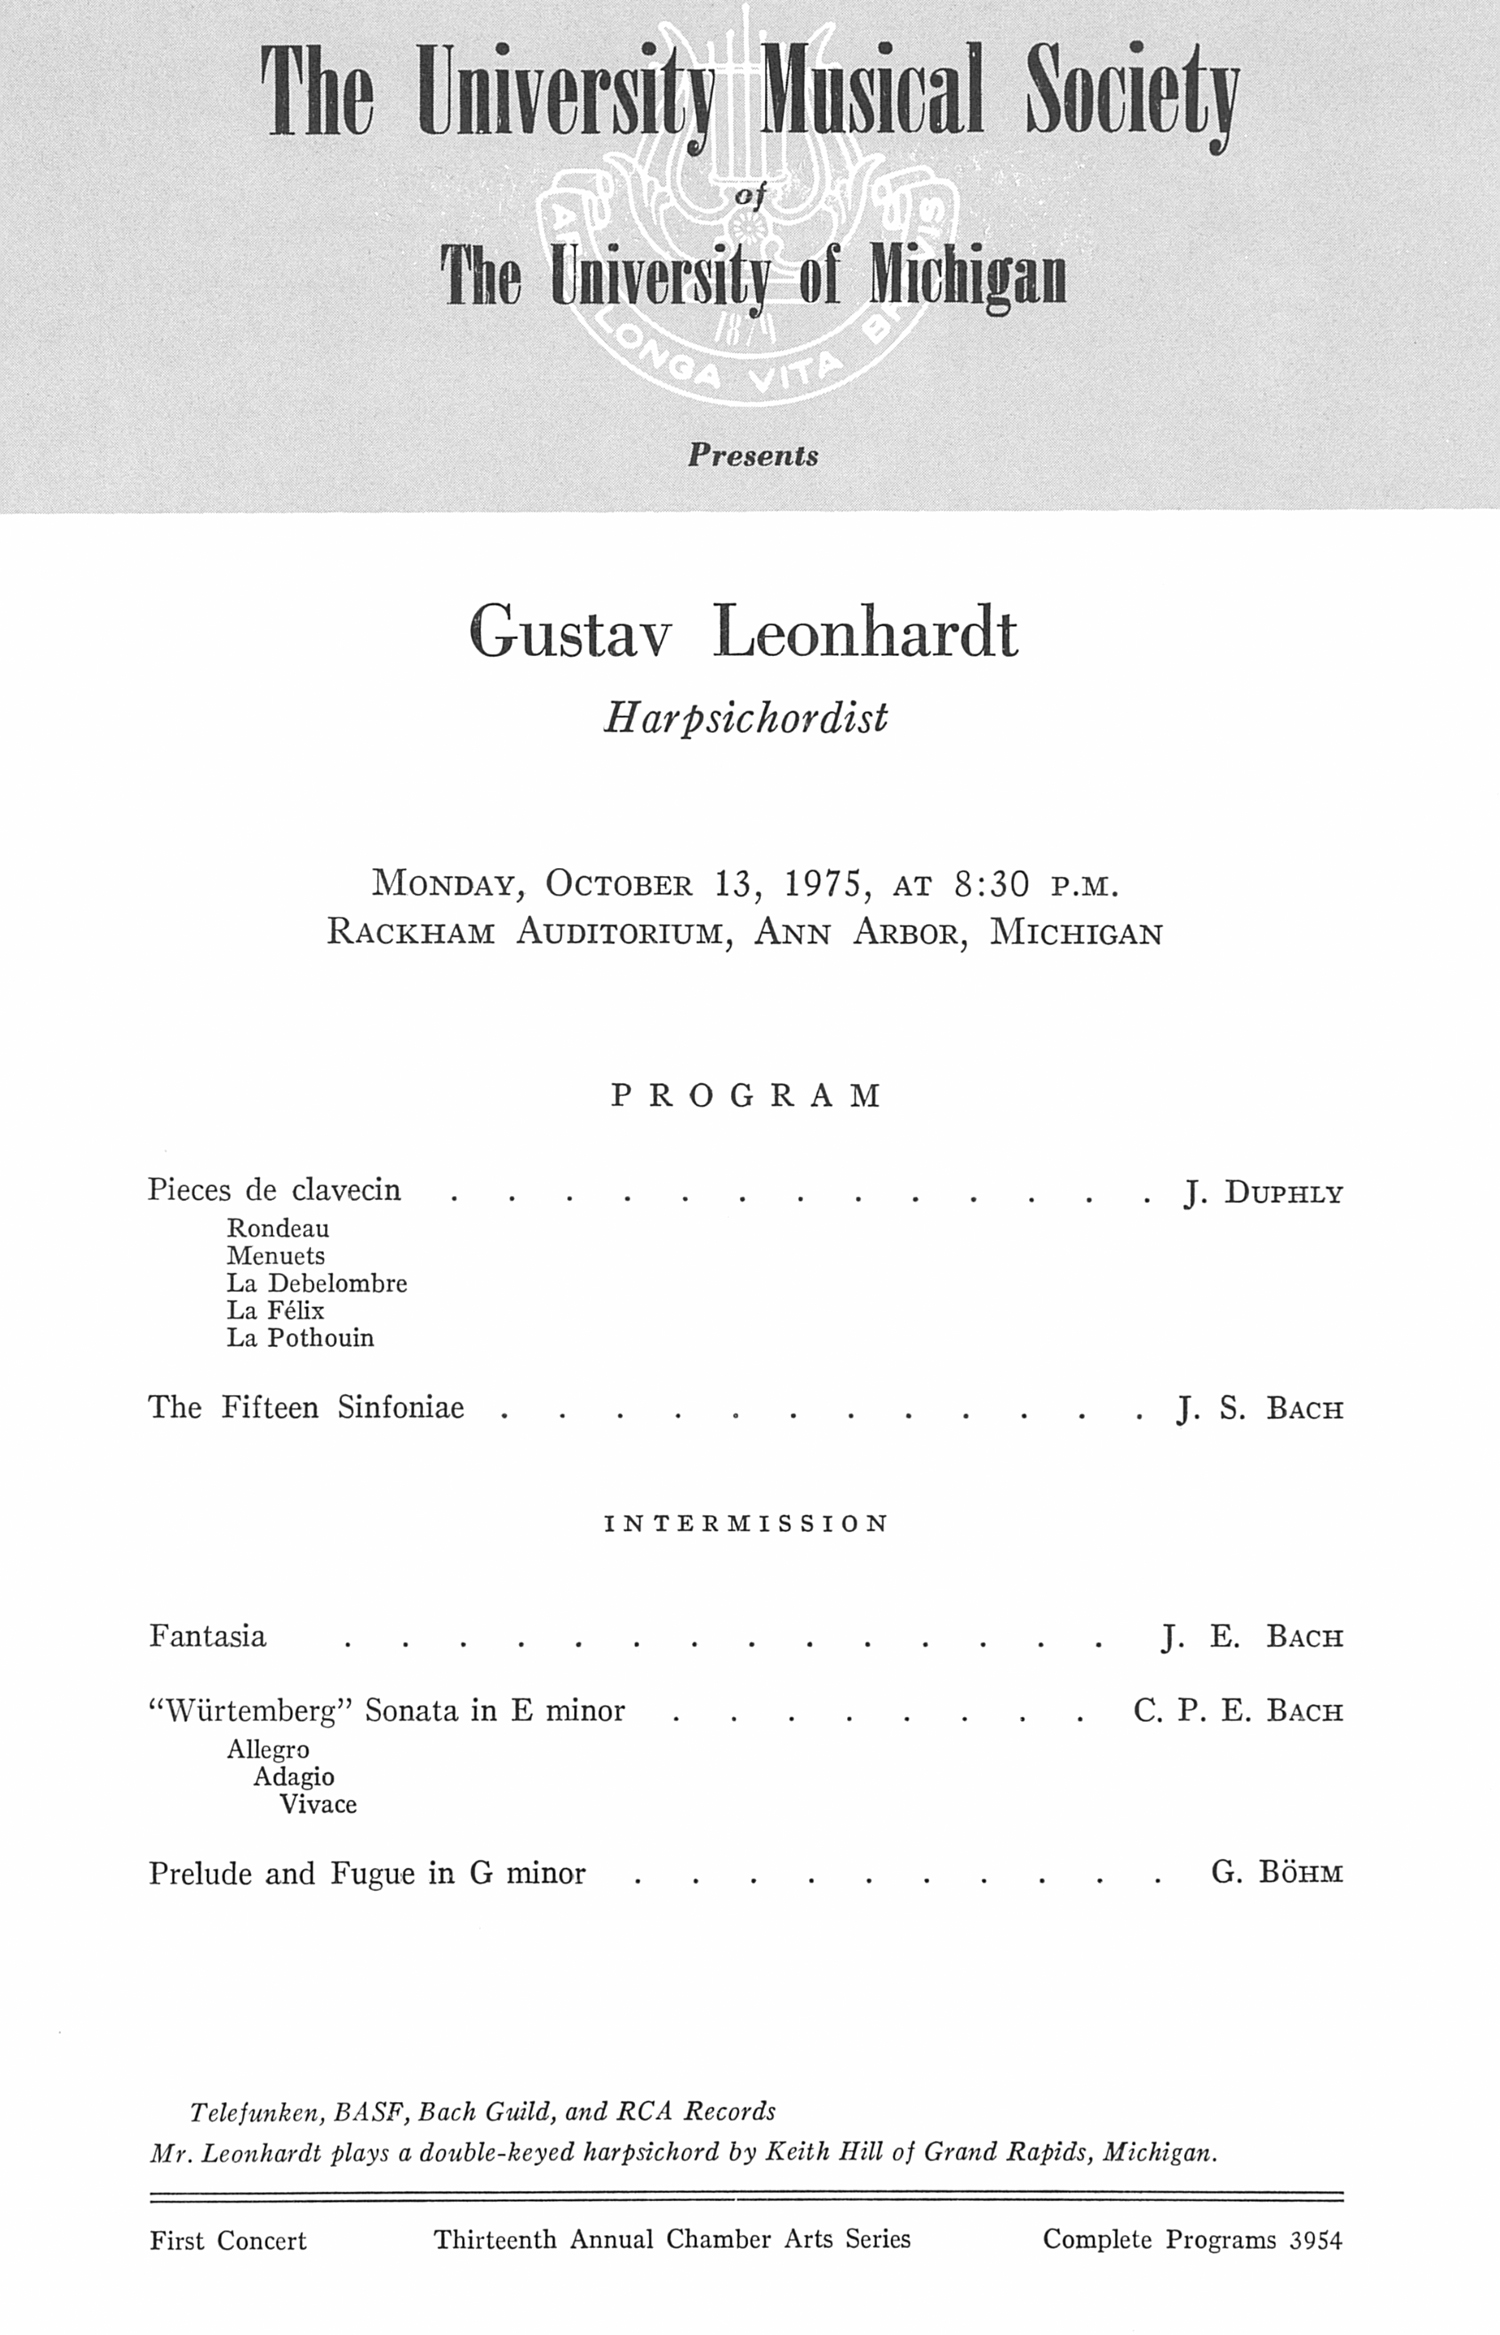 UMS Concert Program, October 13, 1975: Gustav Leonhardt --  image